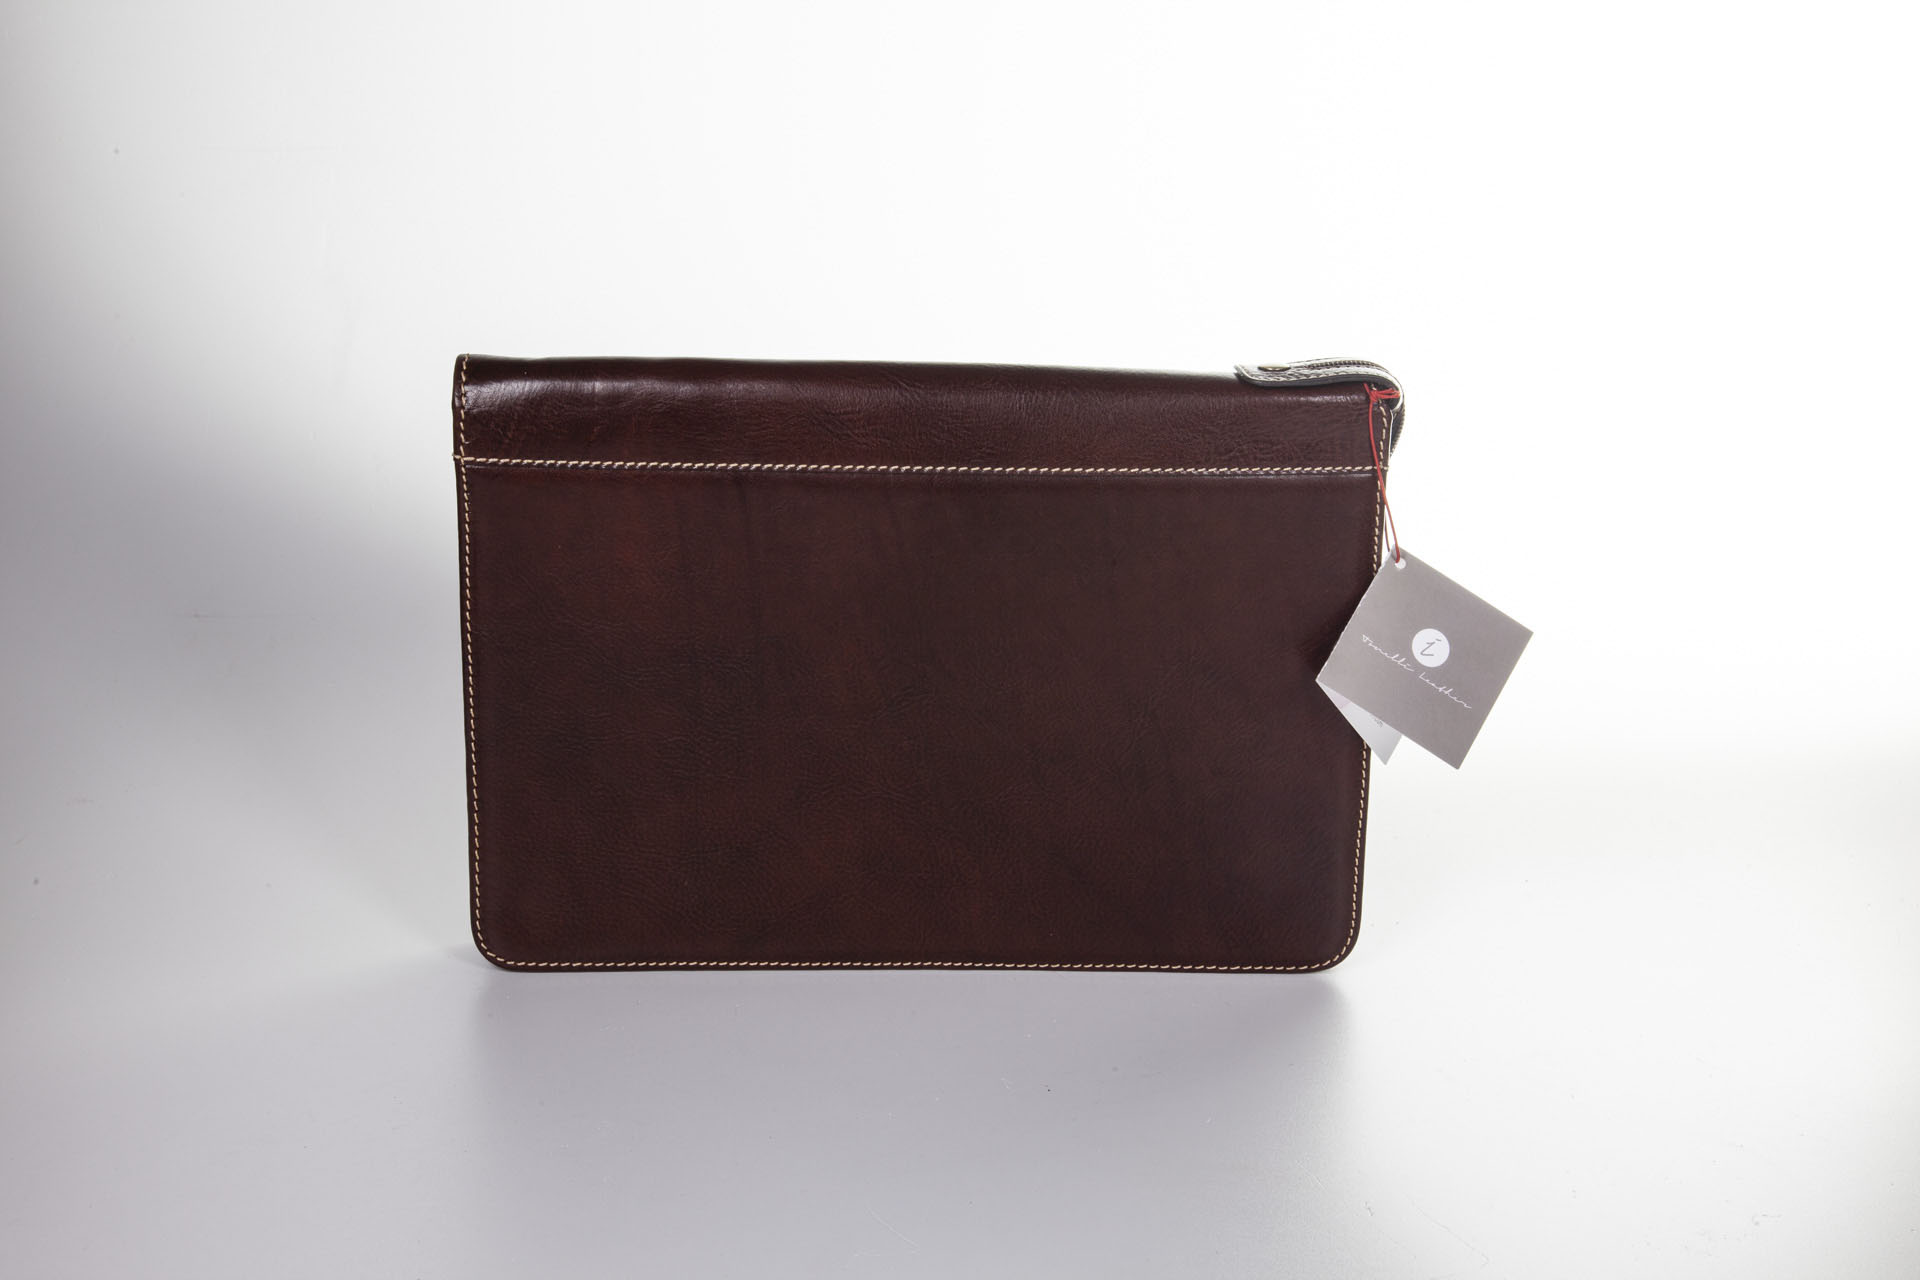 B029_Organizer_marrone_Tonelli_Leather